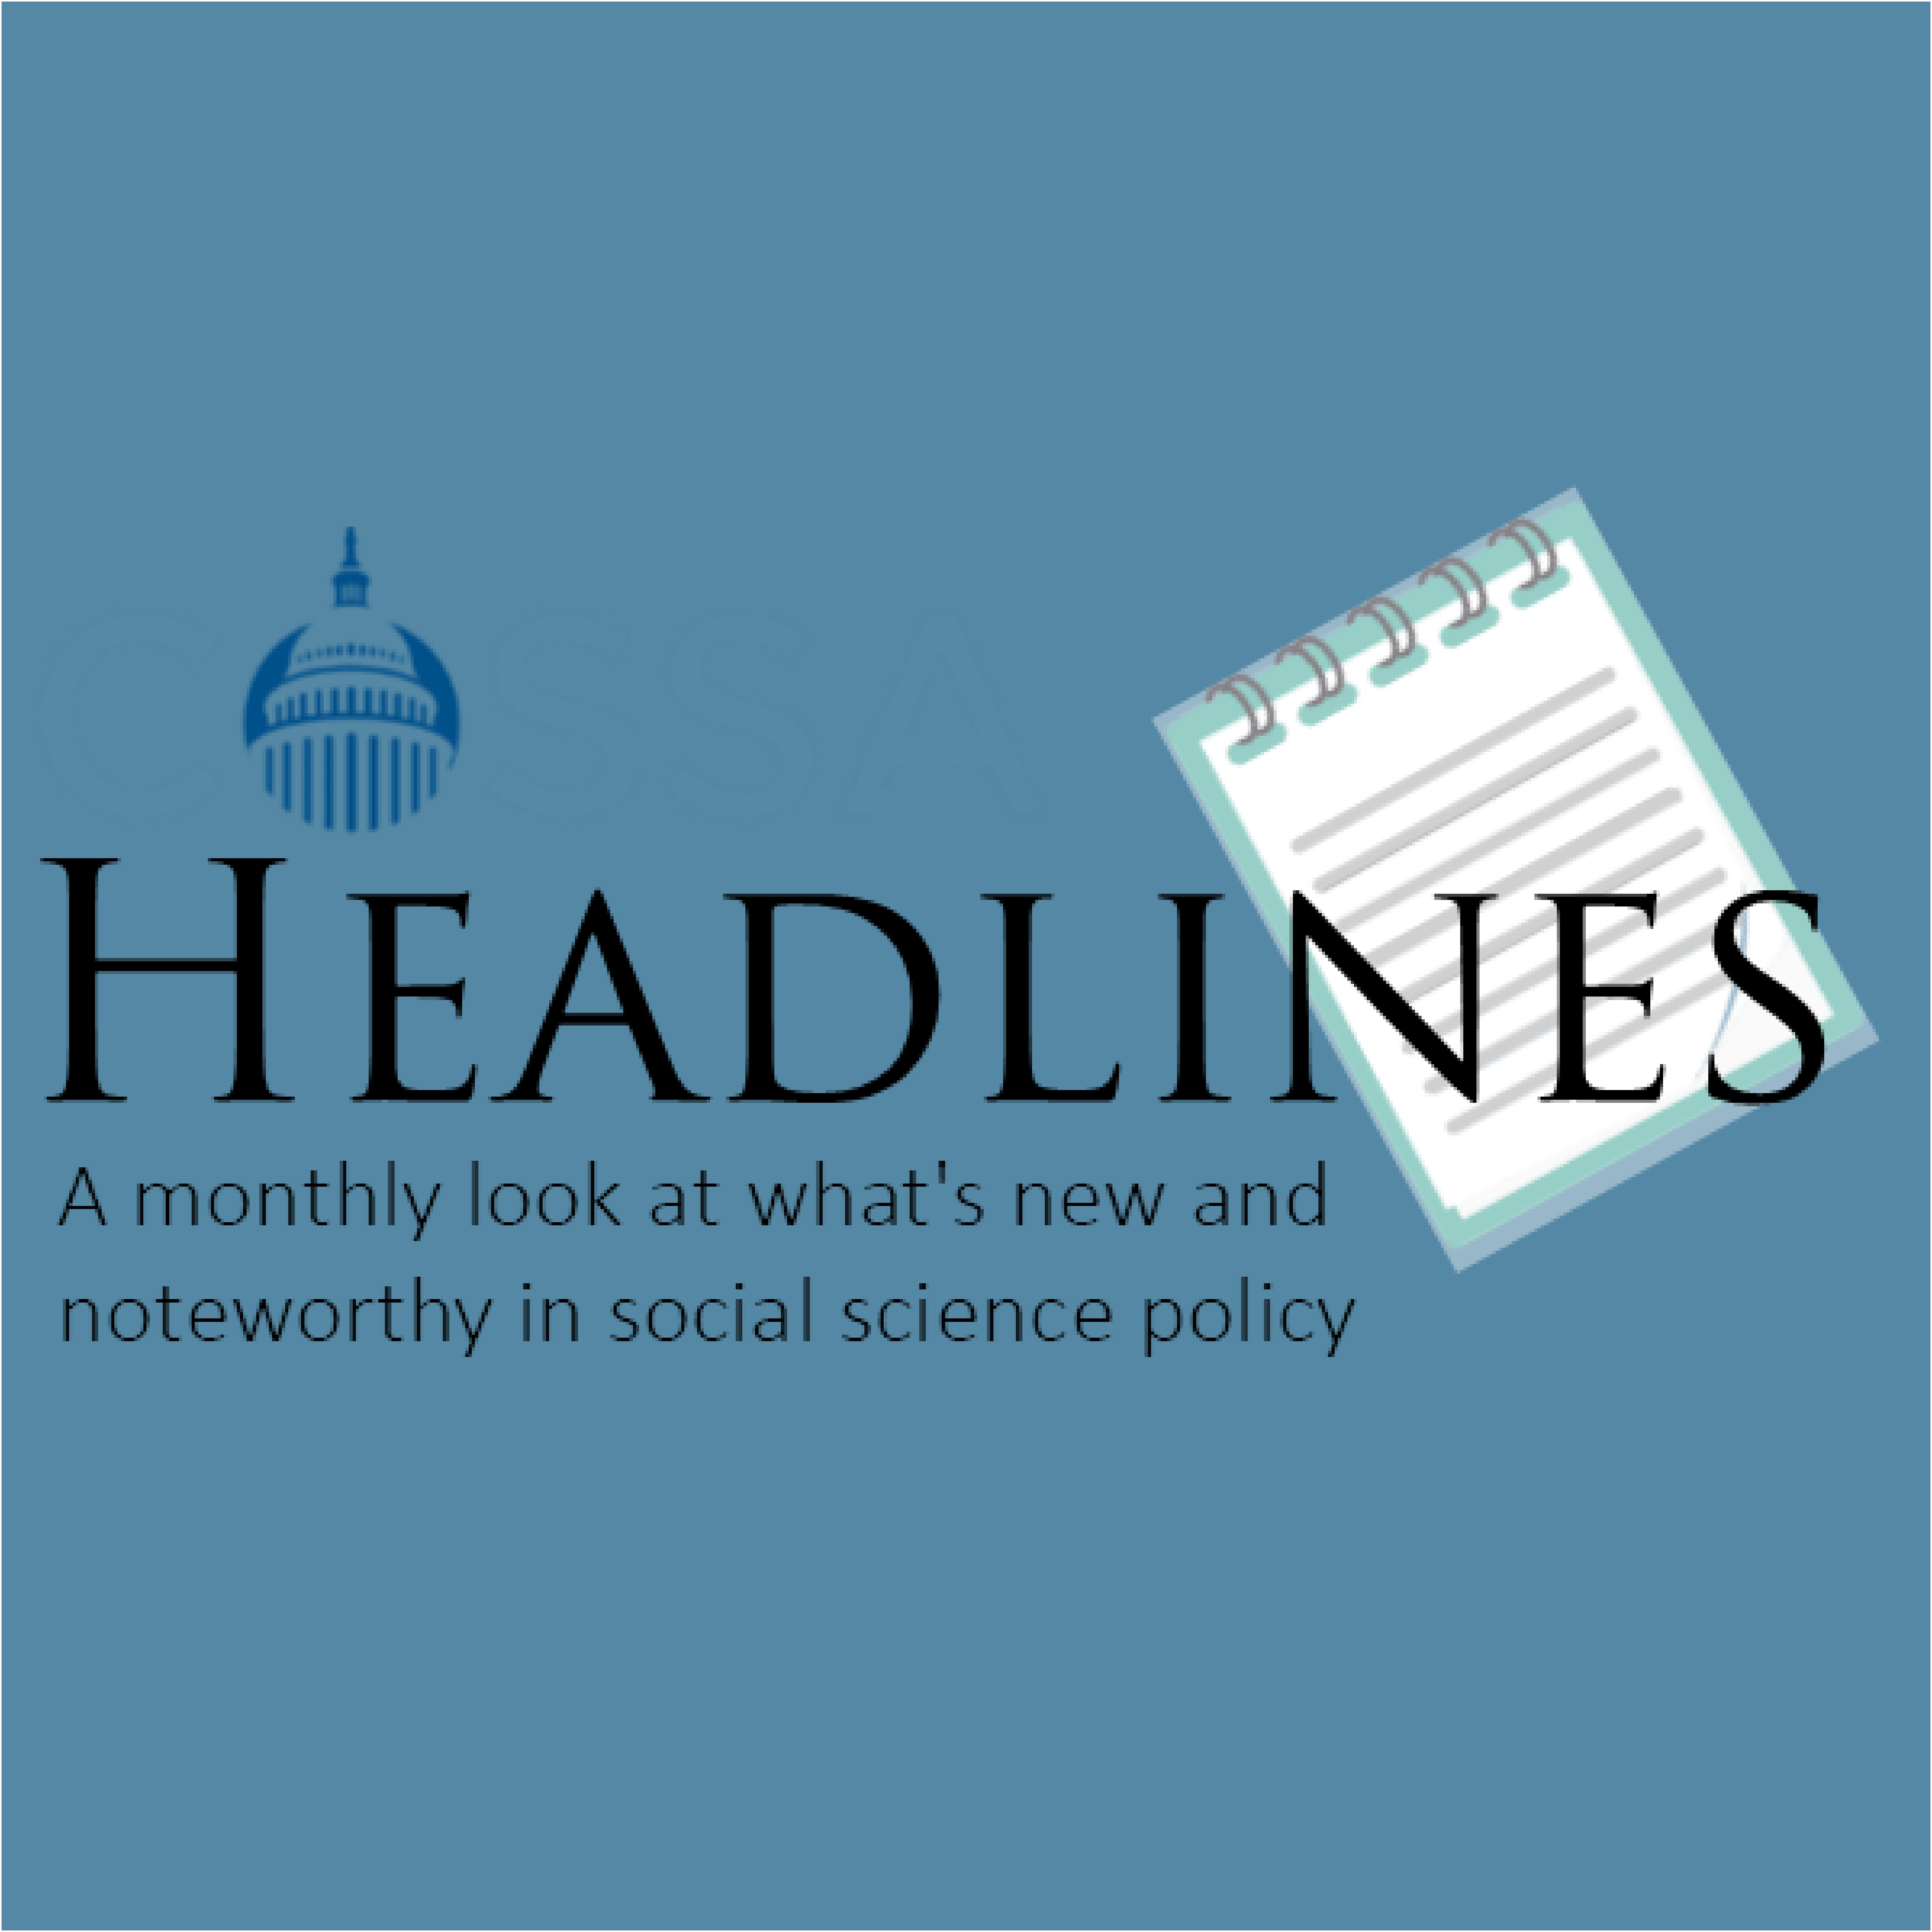 COSSA Headlines: A monthly look at what's new and noteworthy in social science policy